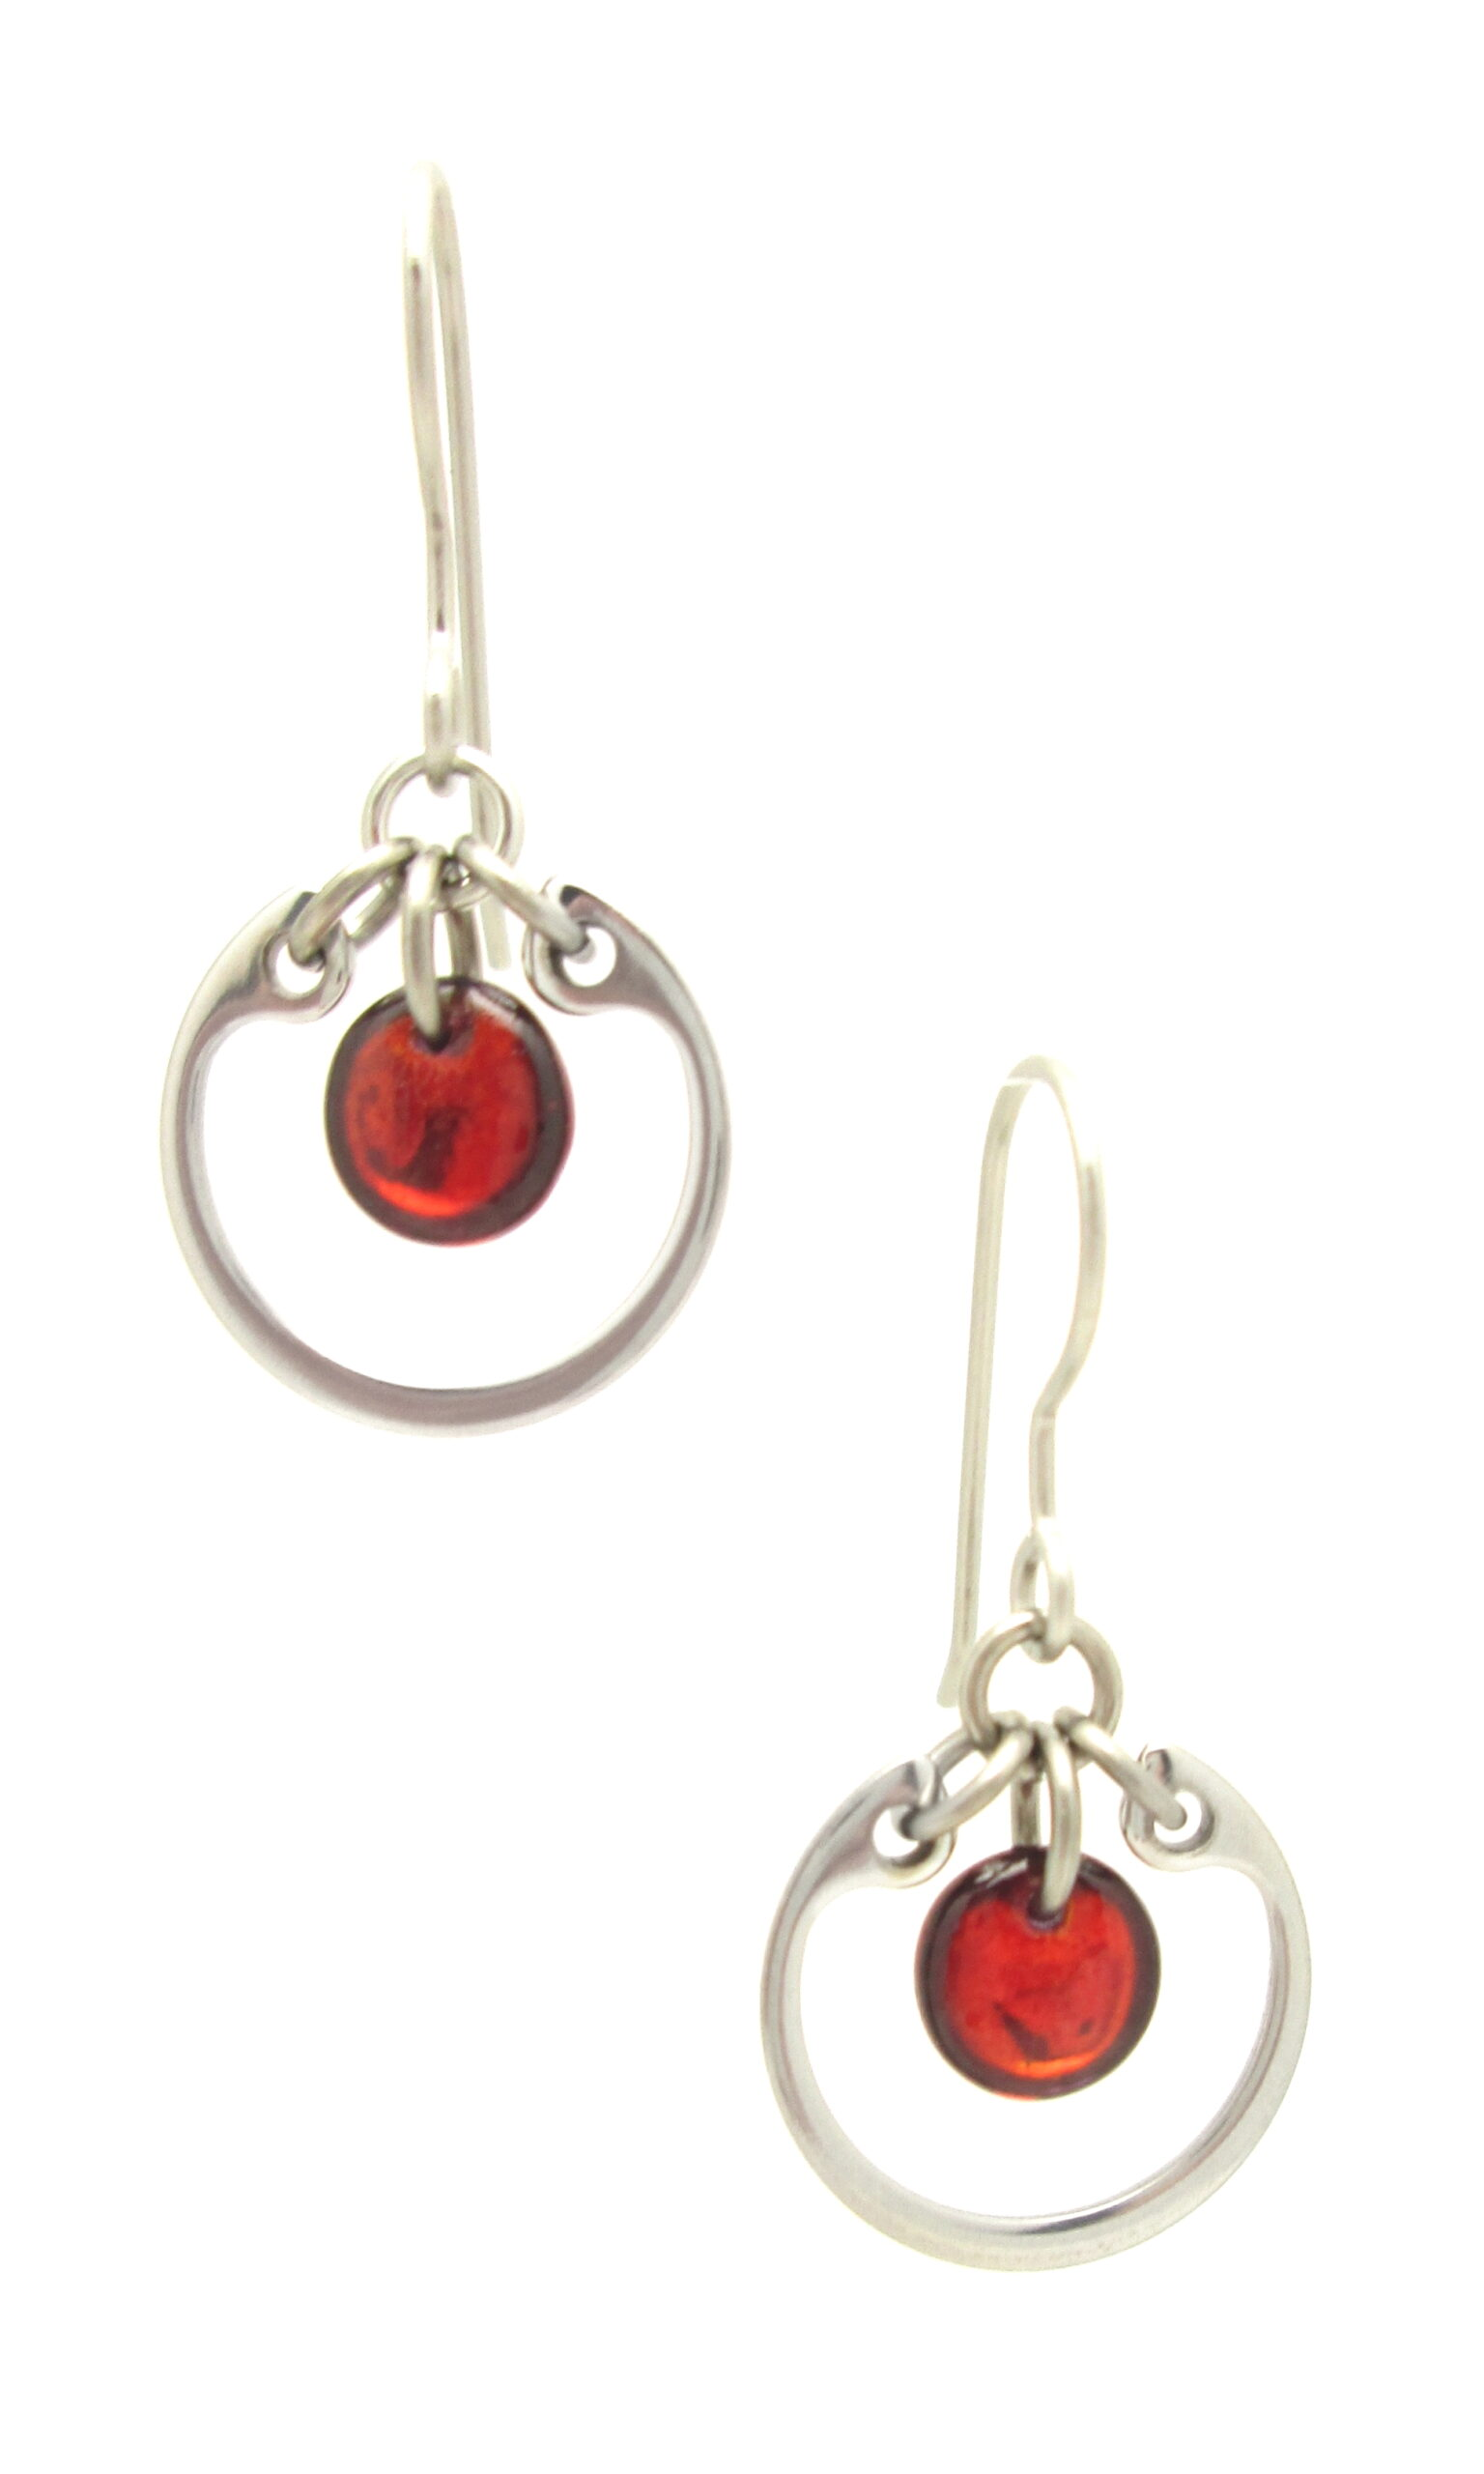 Wraptillion's Small Circle Earrings in red (small modern silver-tone dangle earrings)